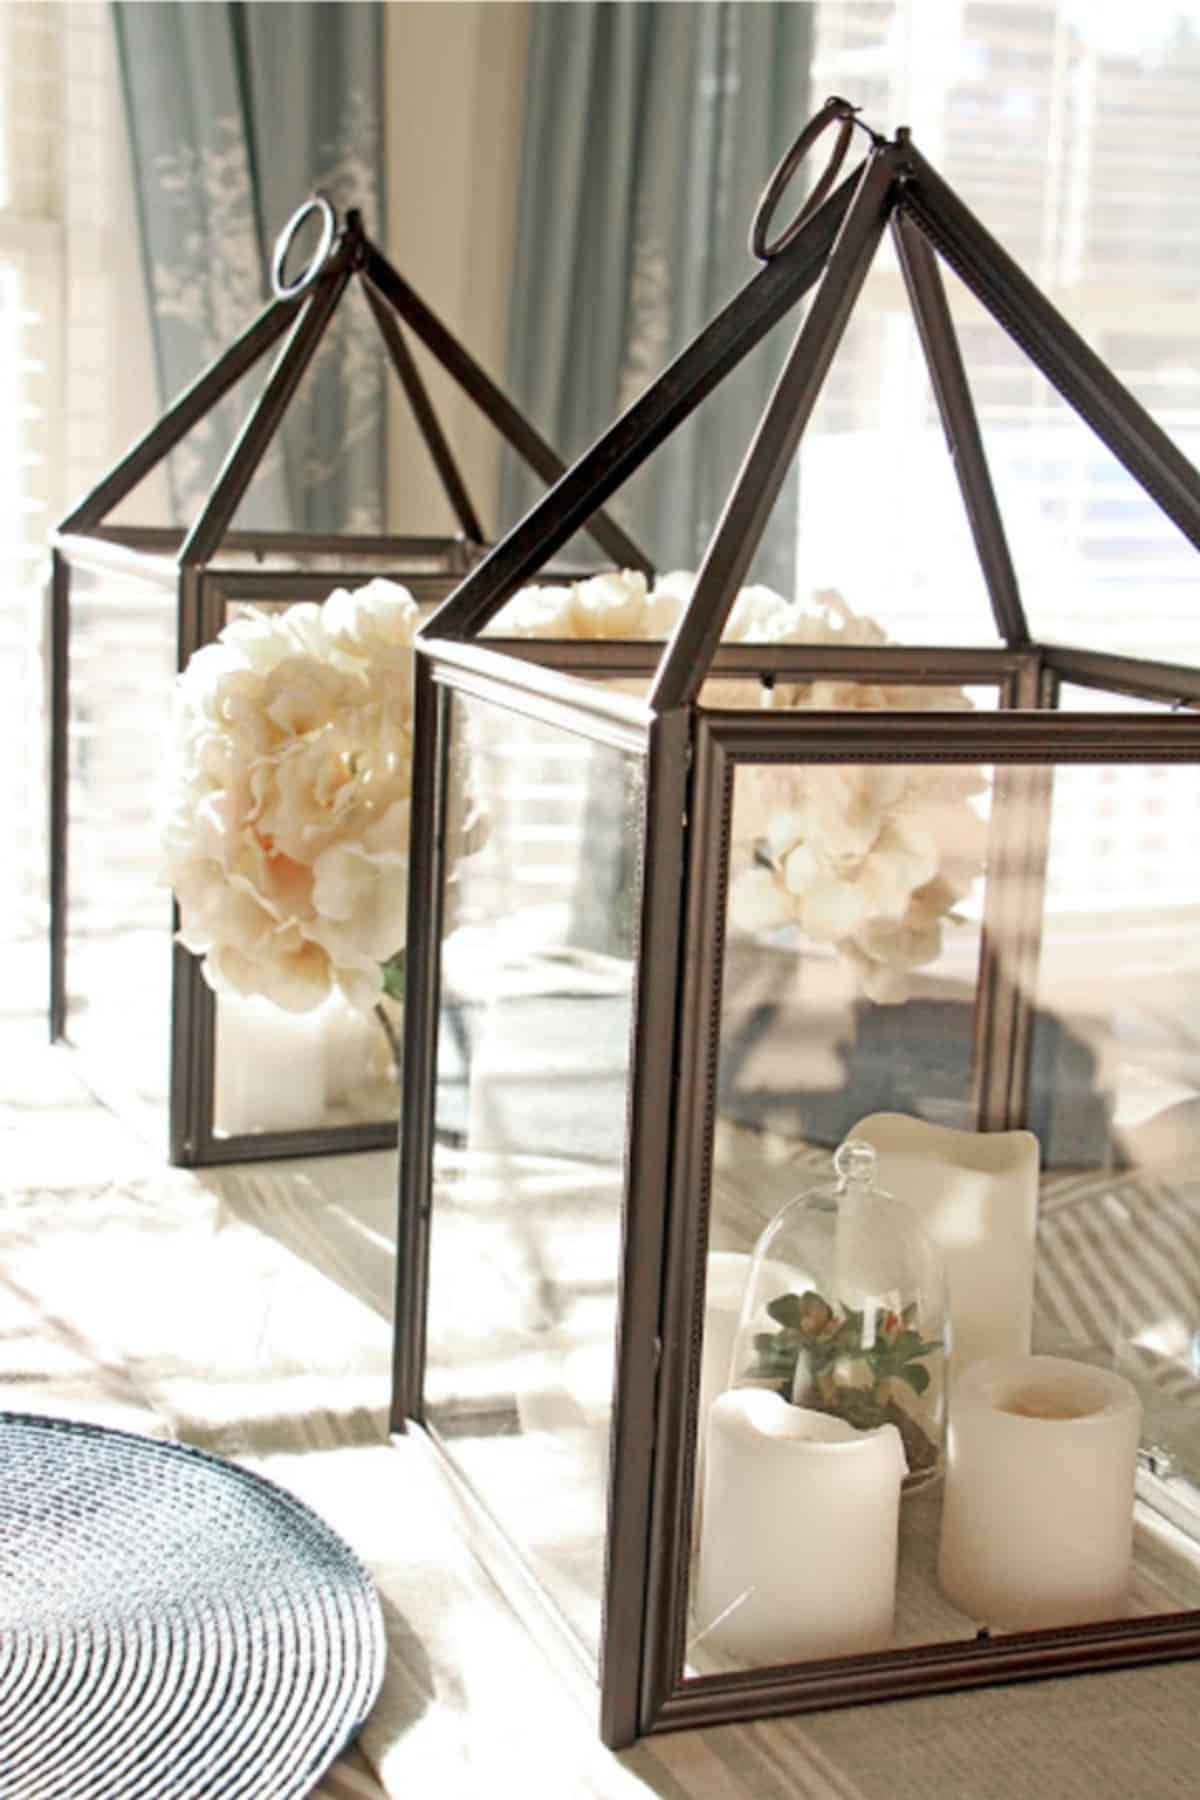 20 Inspiring Diy Candle Holders Ideas To Enhance Your Place Dollar Store Decor Apartment Decorating On A Budget Diy Decor